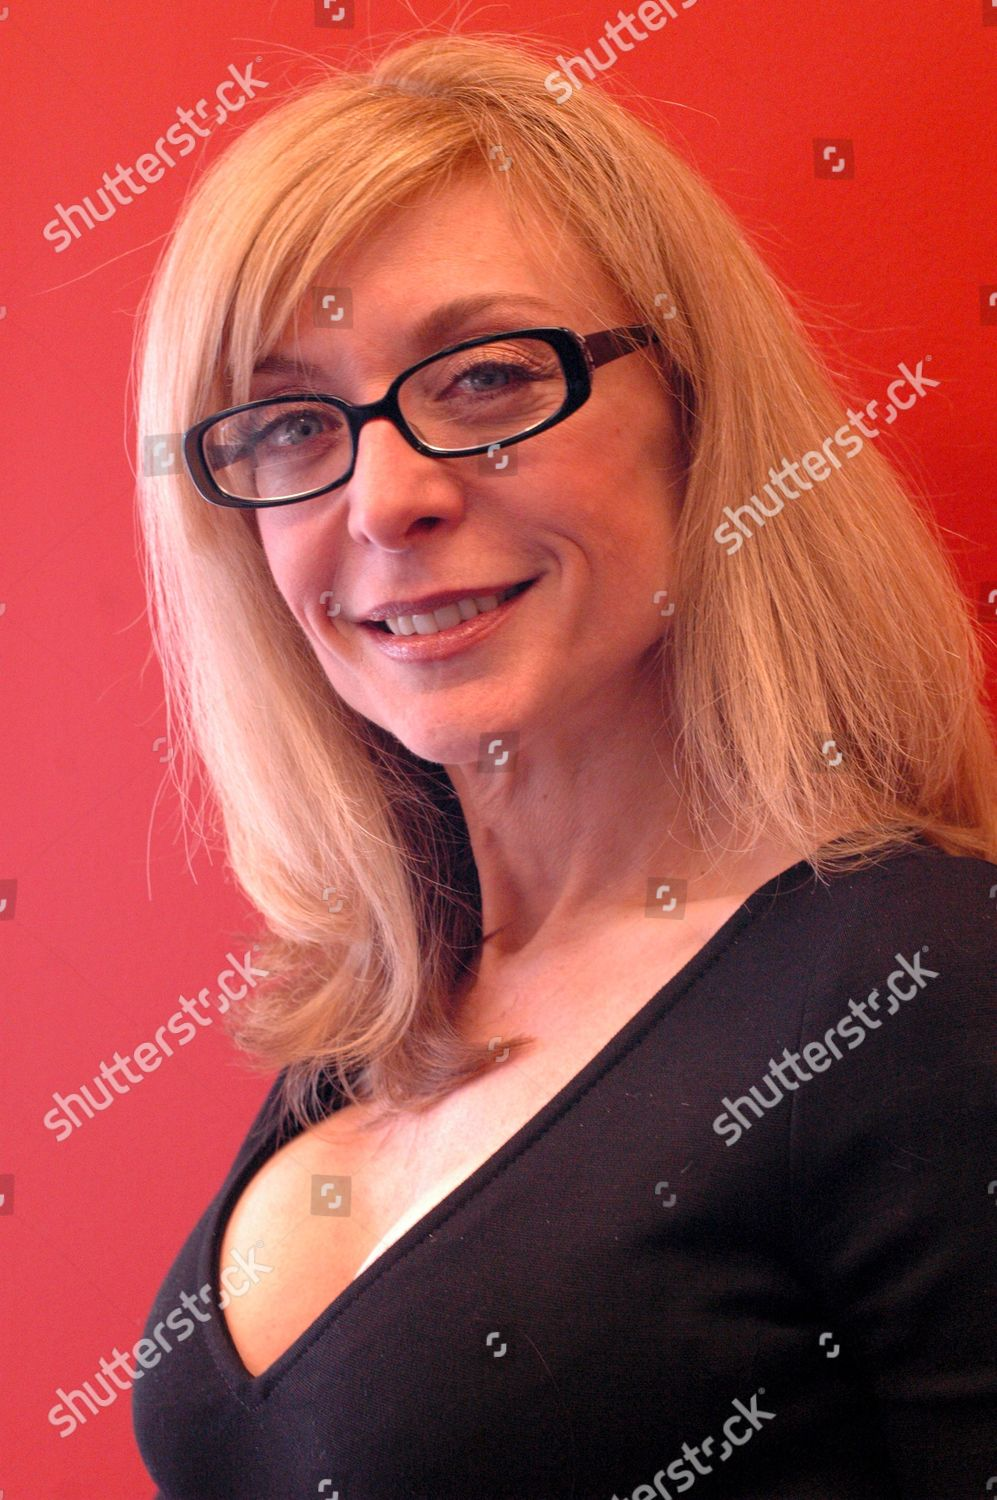 Nina Hartley nude (57 photo) Tits, Snapchat, braless